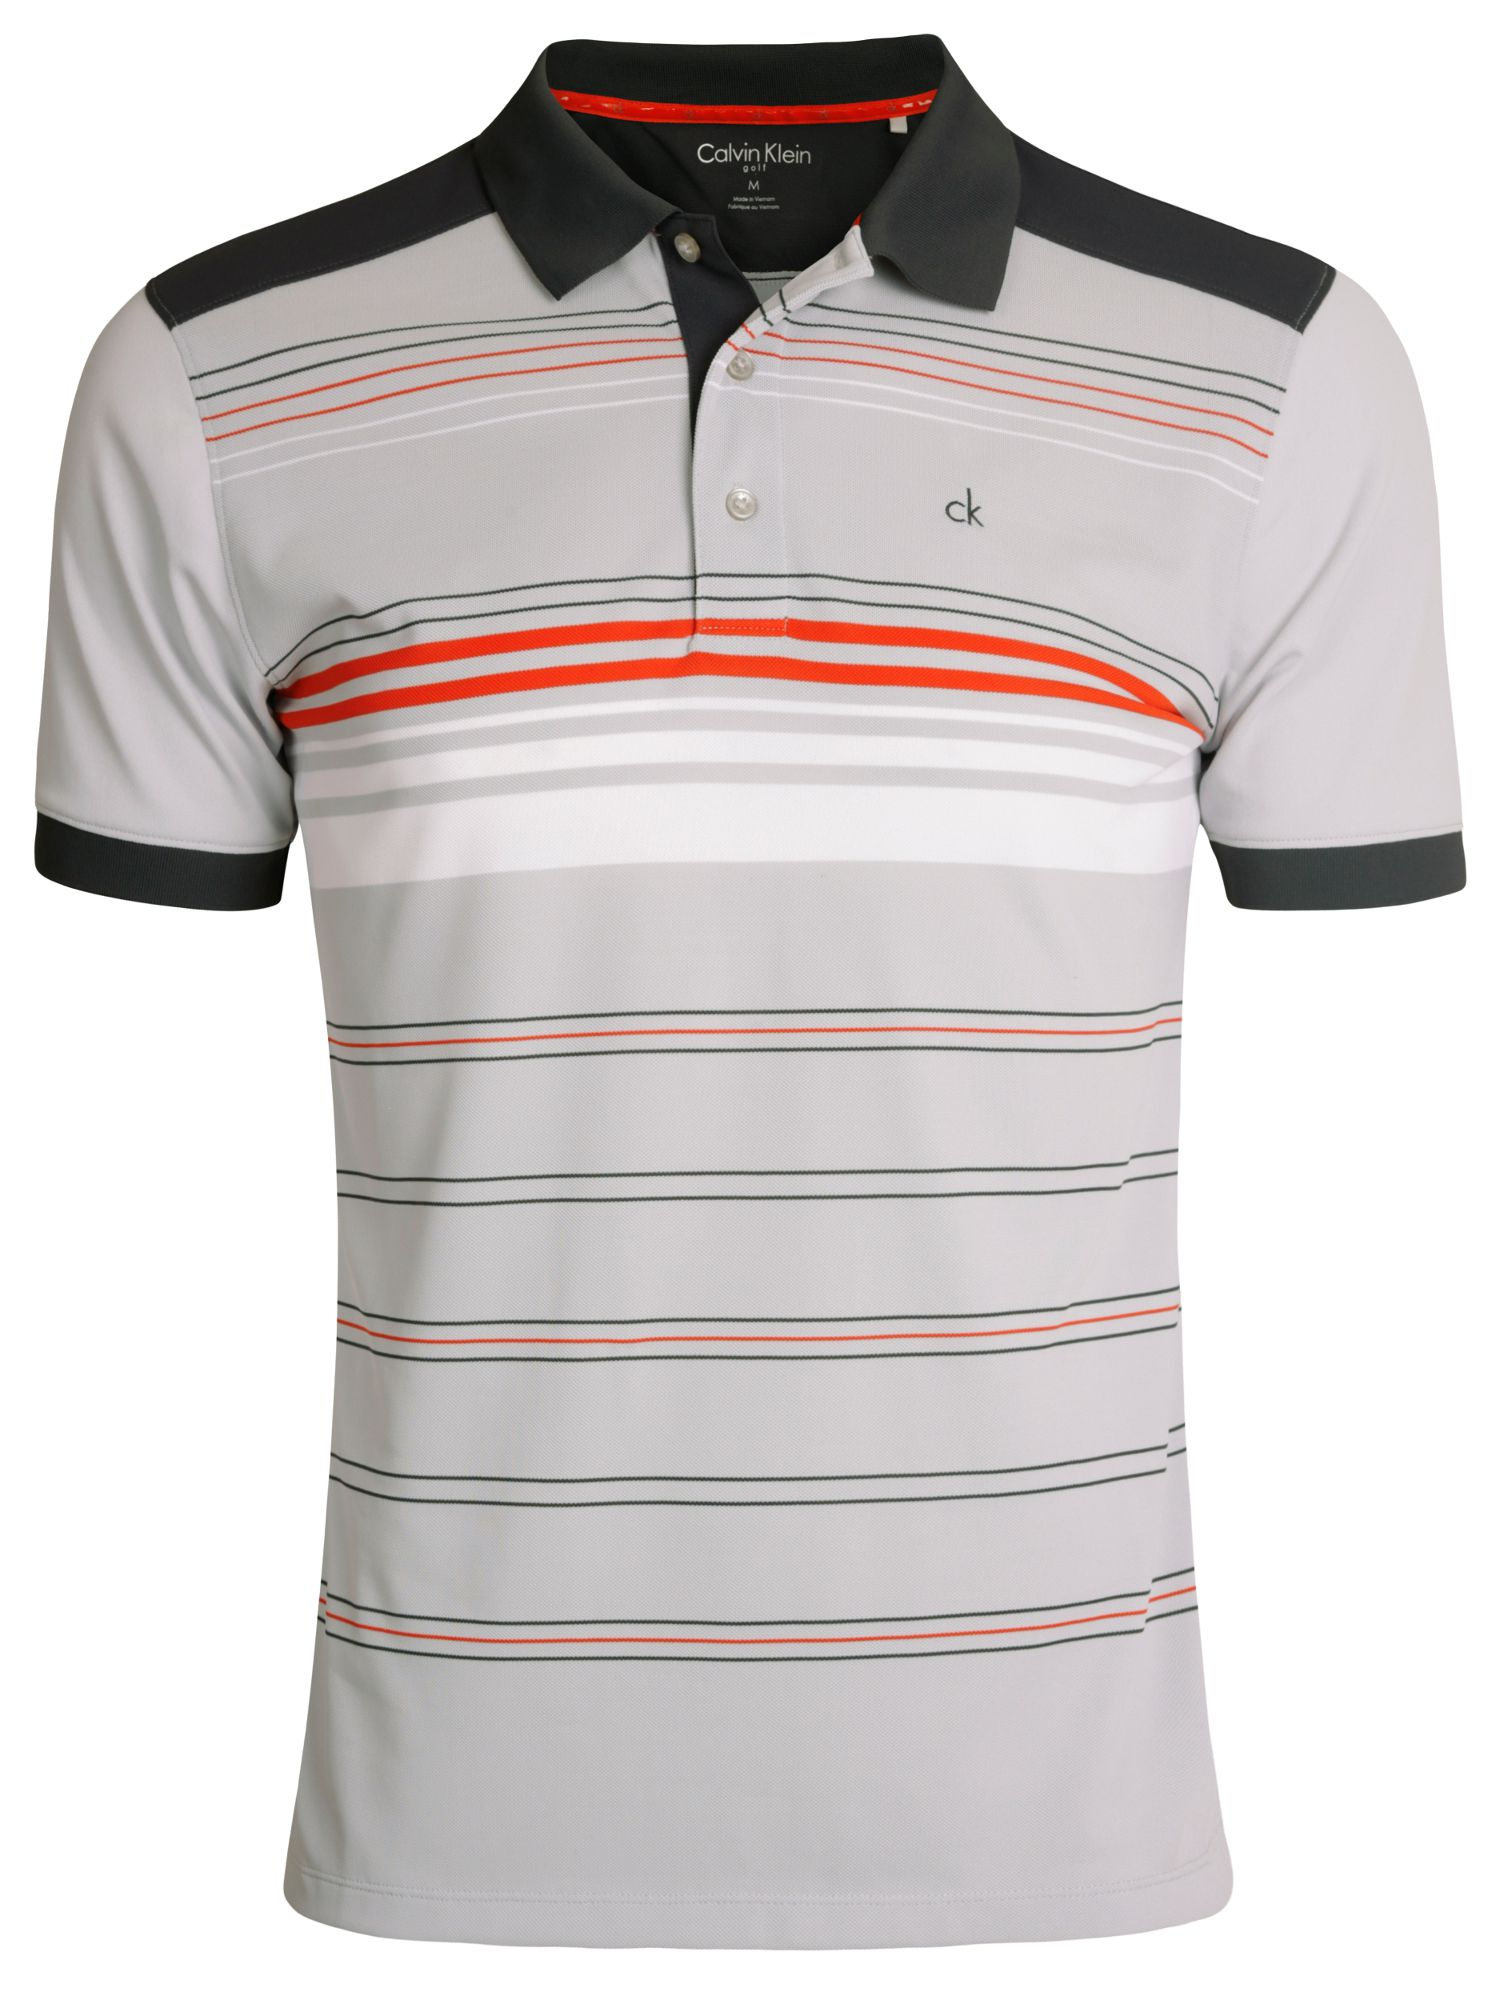 Multi stripe tech polo shirt